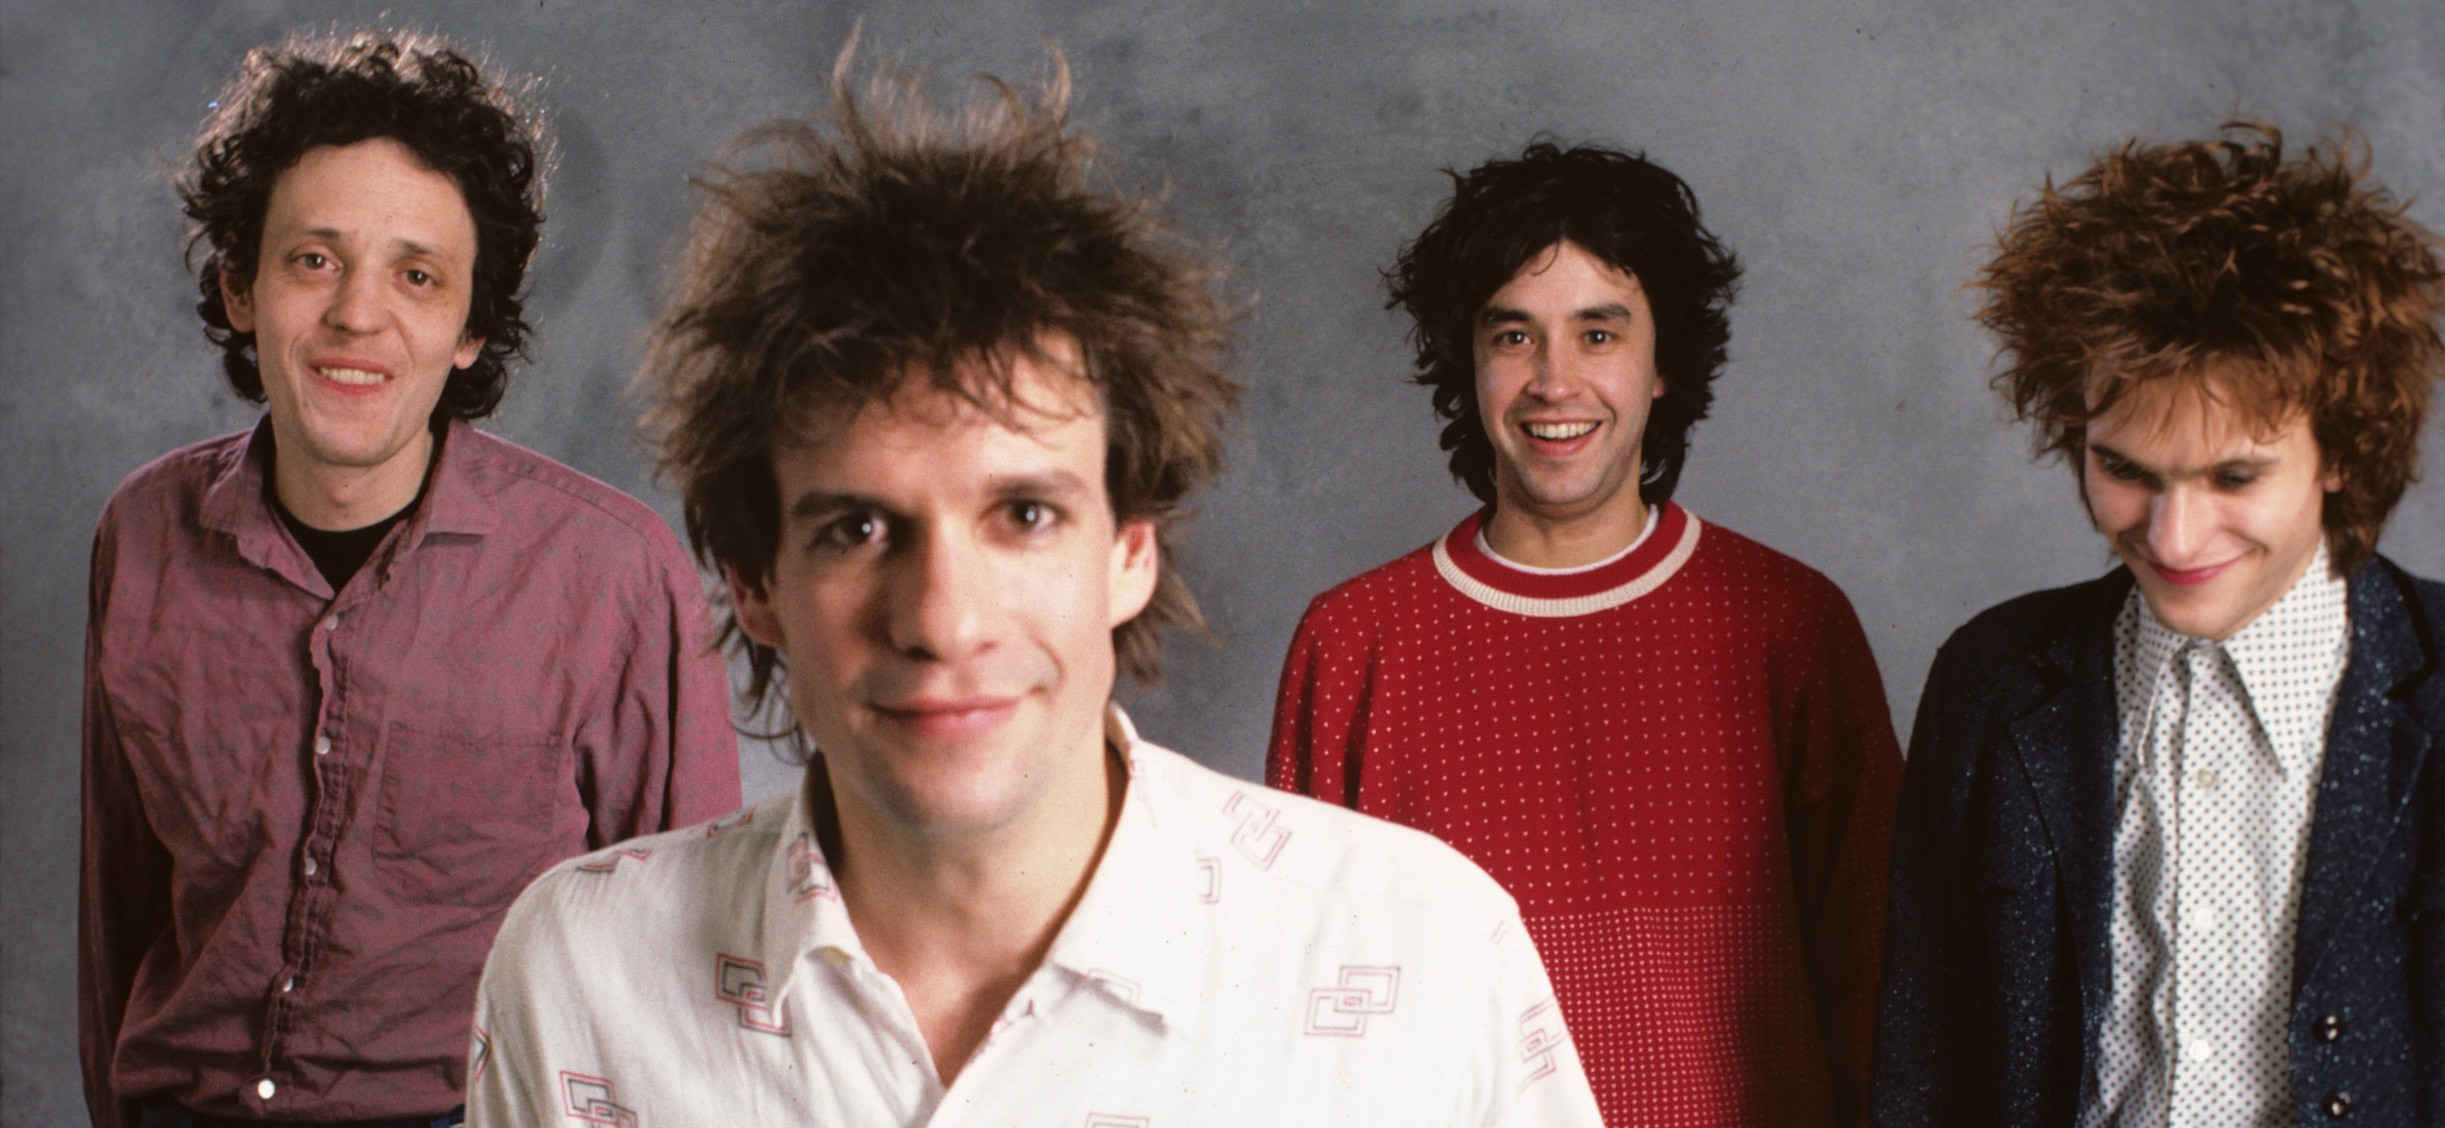 The Replacements: Our 1987 Feature, <i>Growing Up In Public</i>